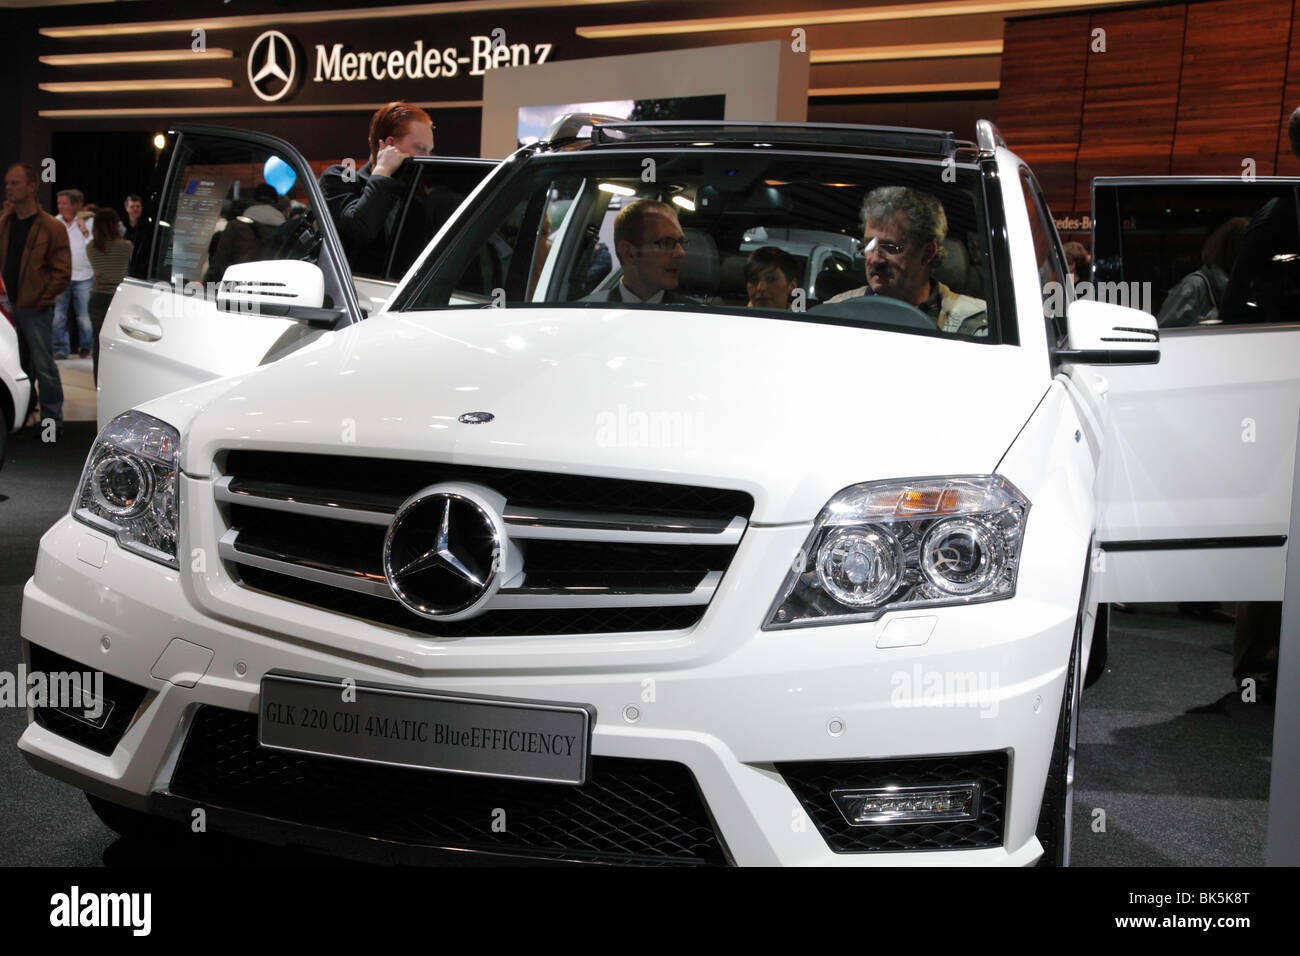 mercedes glk 220 cdi 4matic blueefficiency at the auto mobil stock photo royalty free image. Black Bedroom Furniture Sets. Home Design Ideas